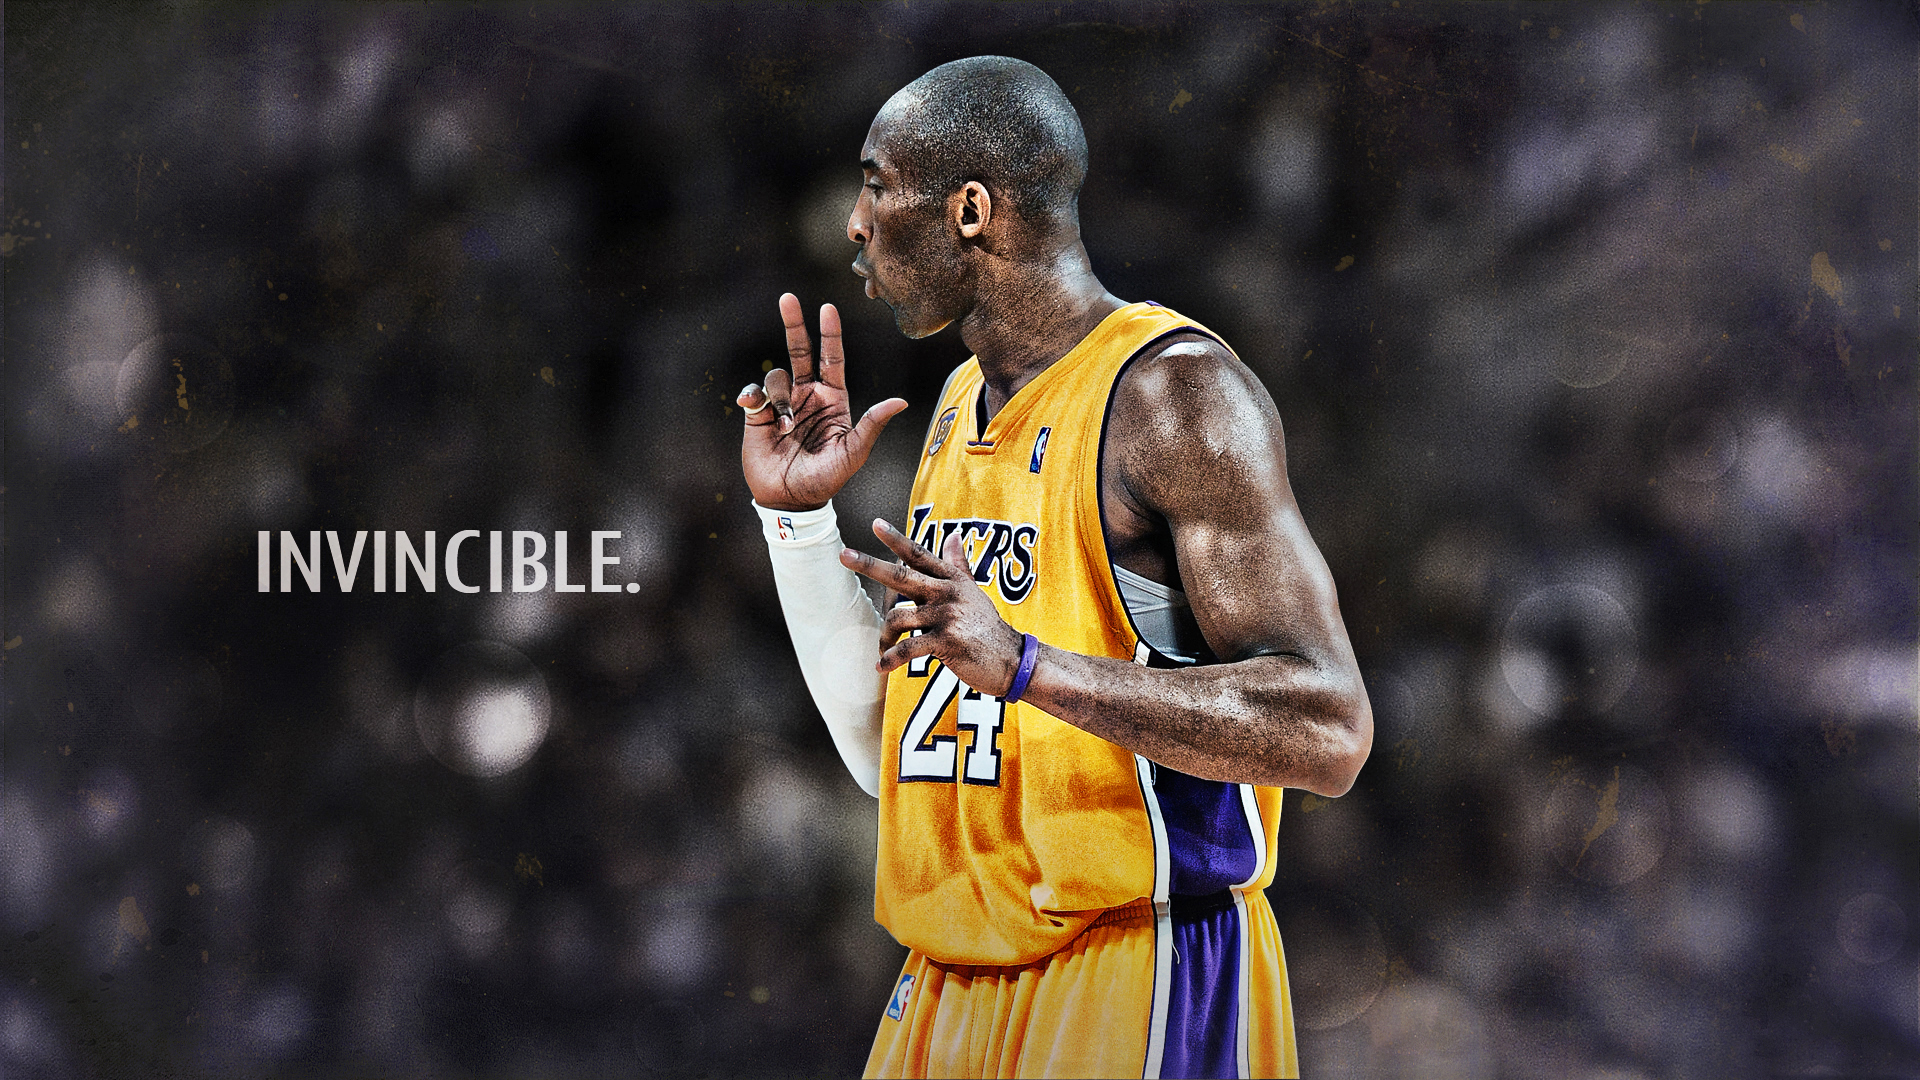 Hd wallpaper nba - Nba Legends Wallpaper Images Pictures Becuo